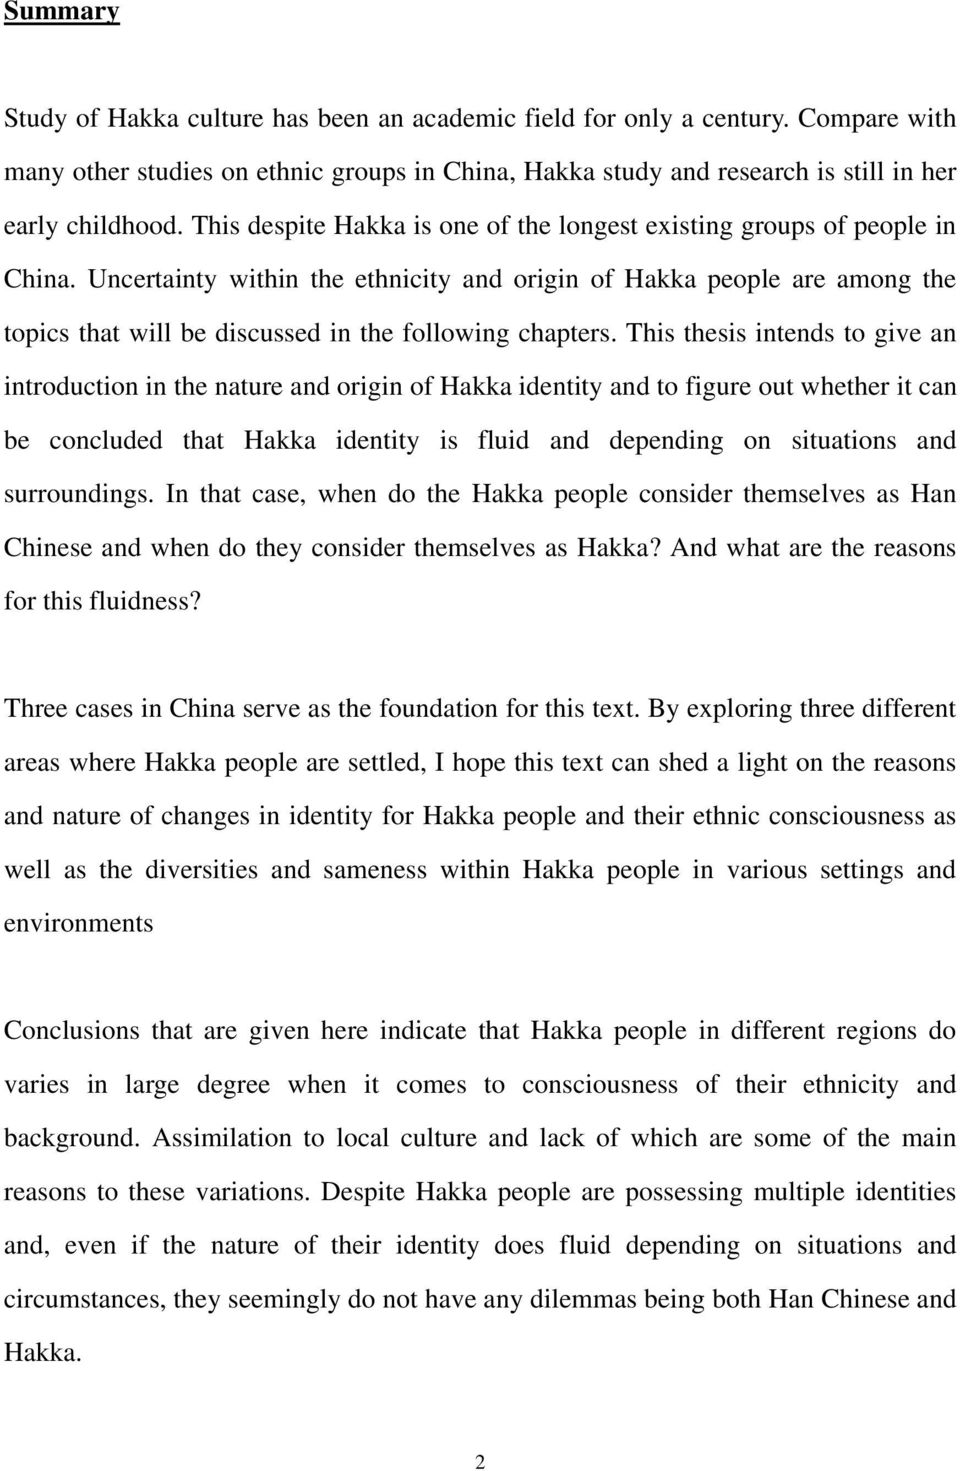 Uncertainty within the ethnicity and origin of Hakka people are among the topics that will be discussed in the following chapters.